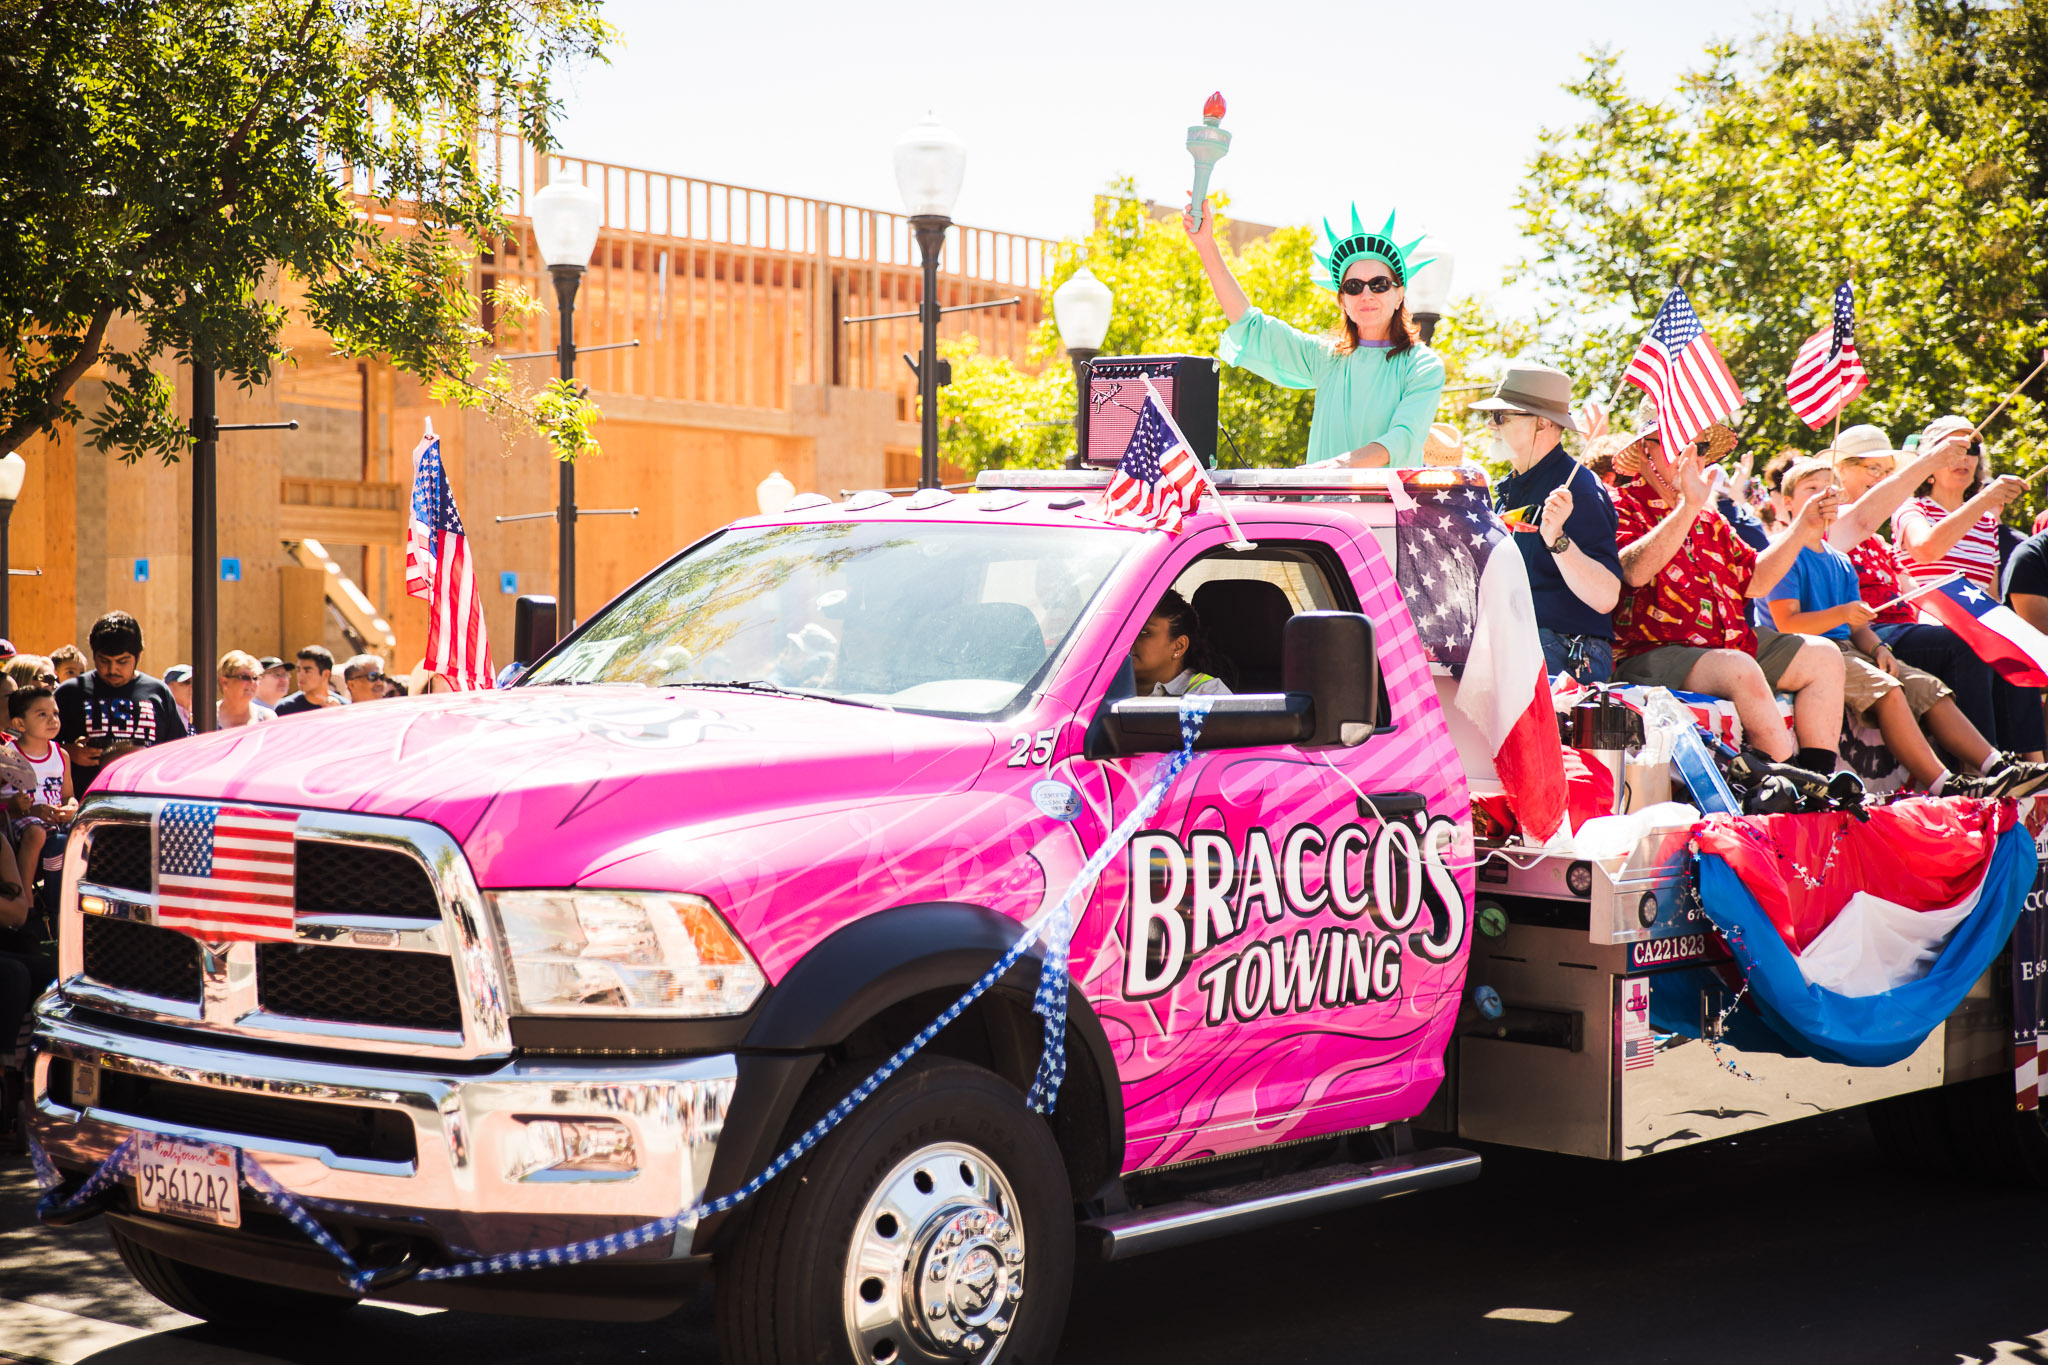 Archer_Inspired_Photography_Morgan_Hill_California_4th_of_july_parade-99.jpg